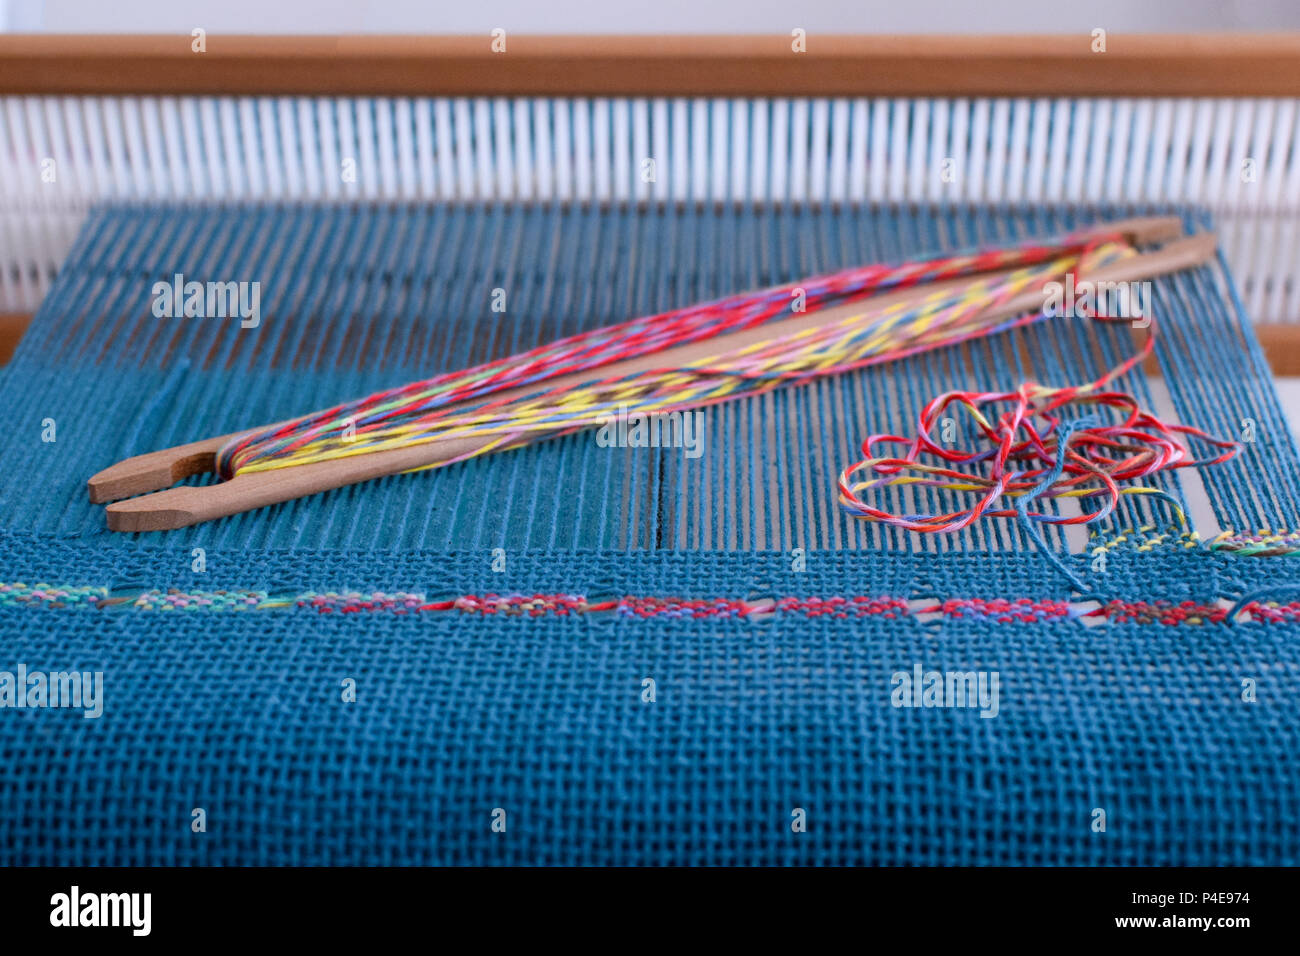 Spanish lace weaving on rigid heddle loom with blue warp and colorful weft - Stock Image